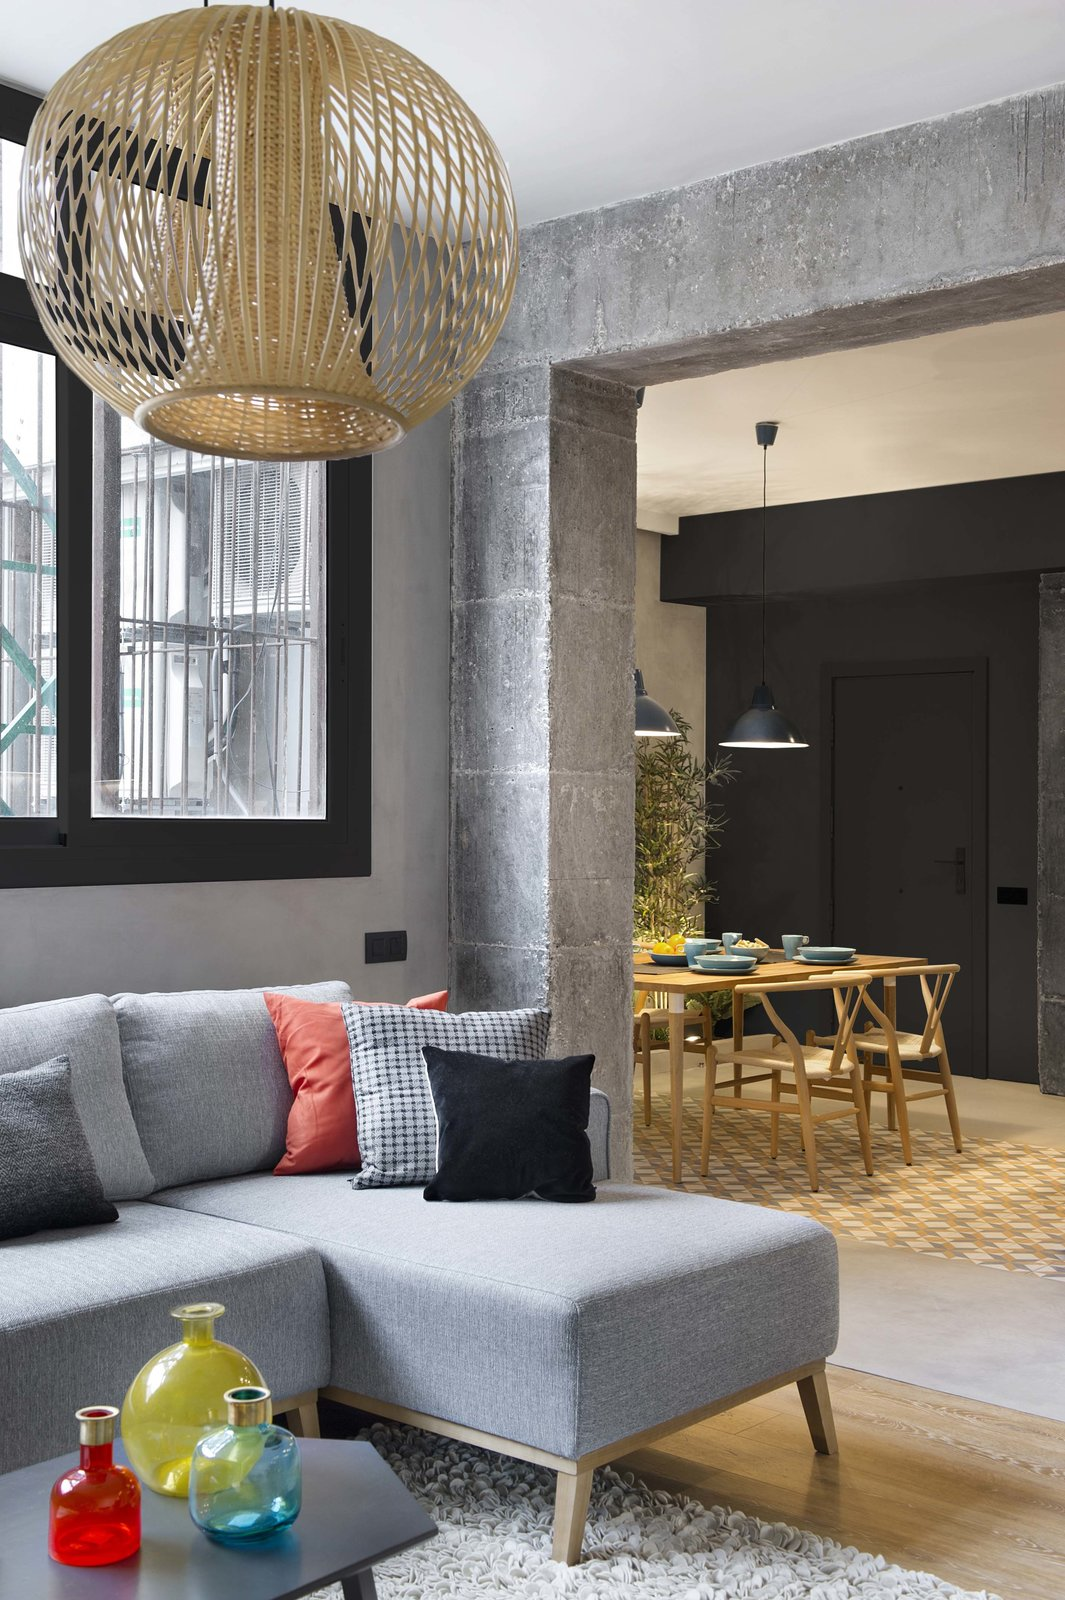 In This Compact Barcelona Apartment, Space Is Maximized With Smart Material Choices - Photo 6 of 11